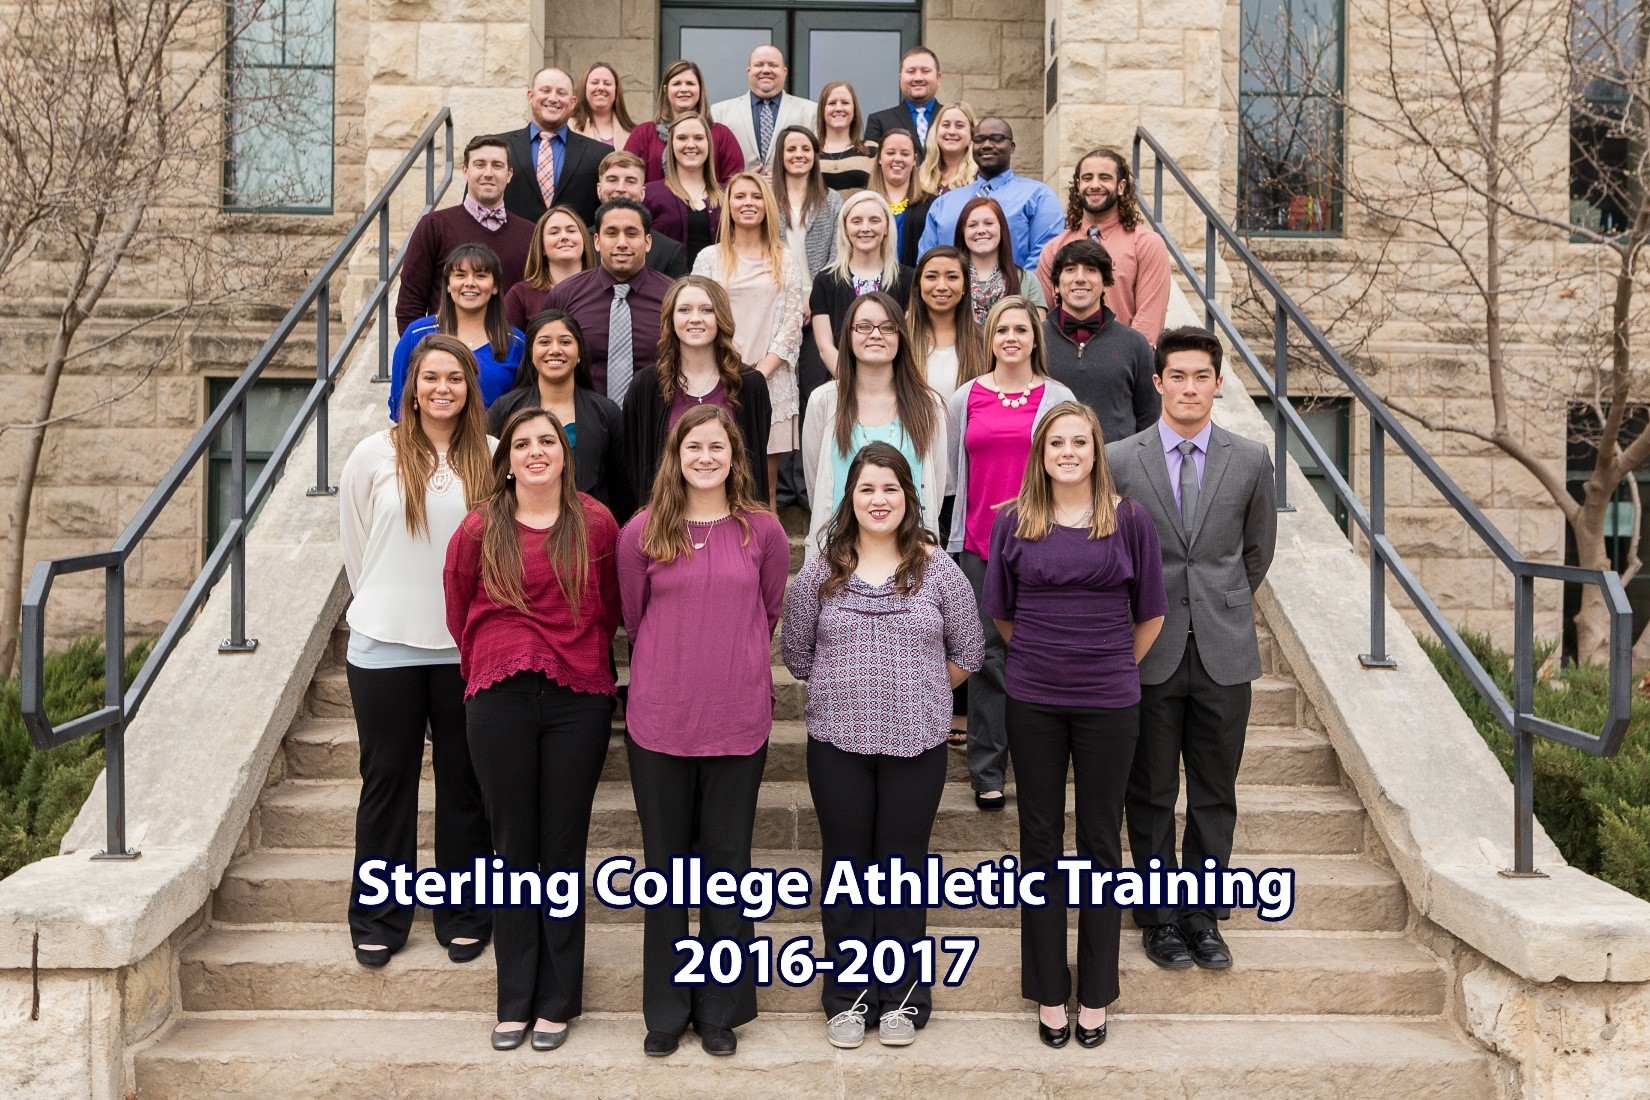 Sterling College Athletic Training 2016-17